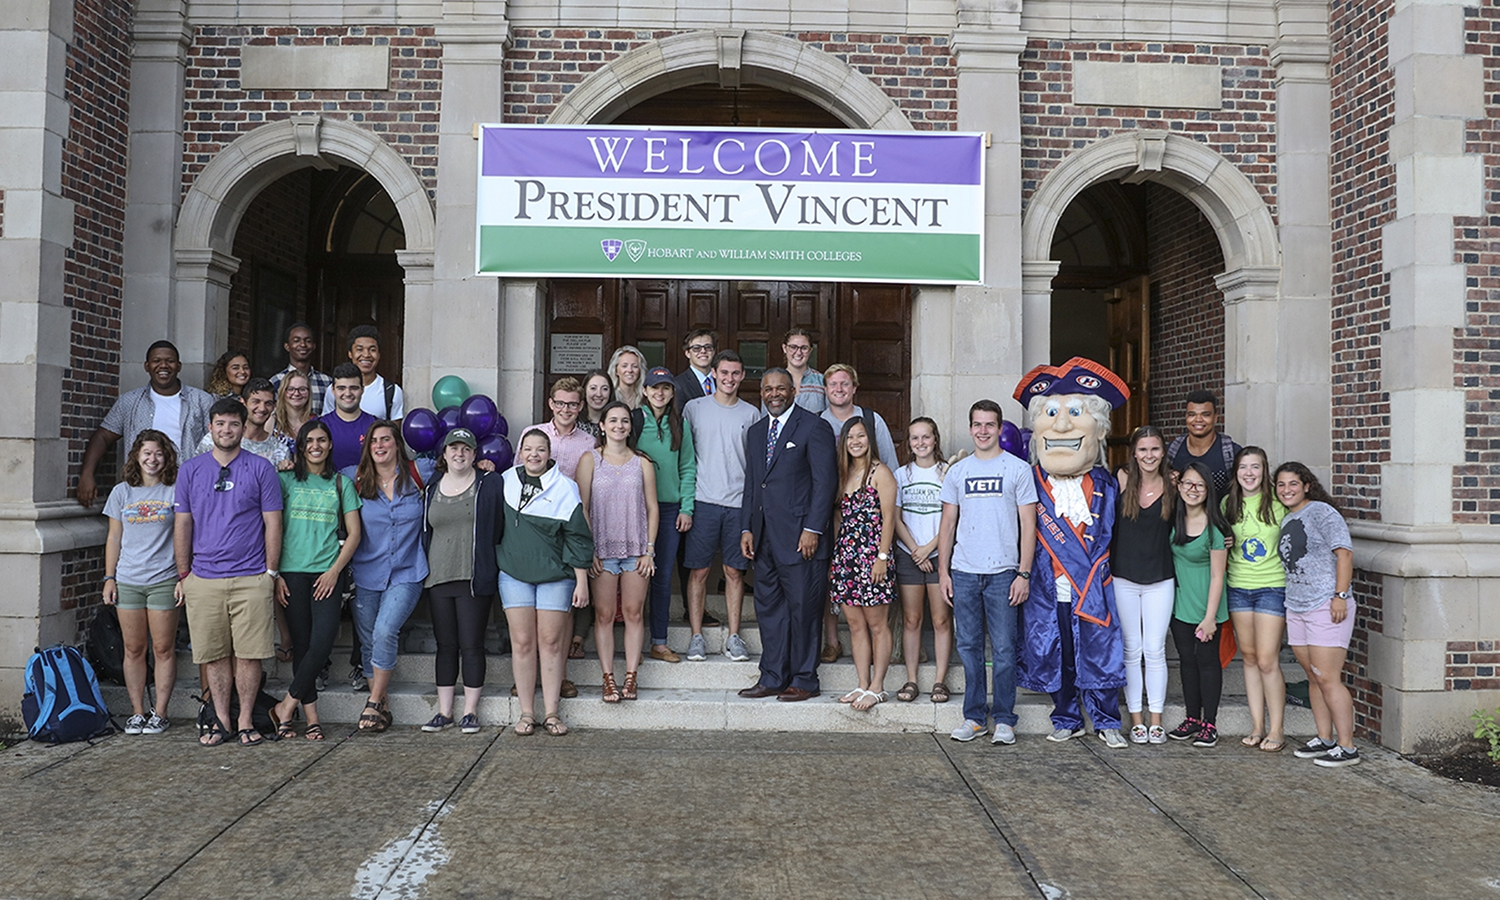 HWS President Gregory J. Vincent â83 gathers with students for a photo in front of Coxe Hall during his welcome to campus.